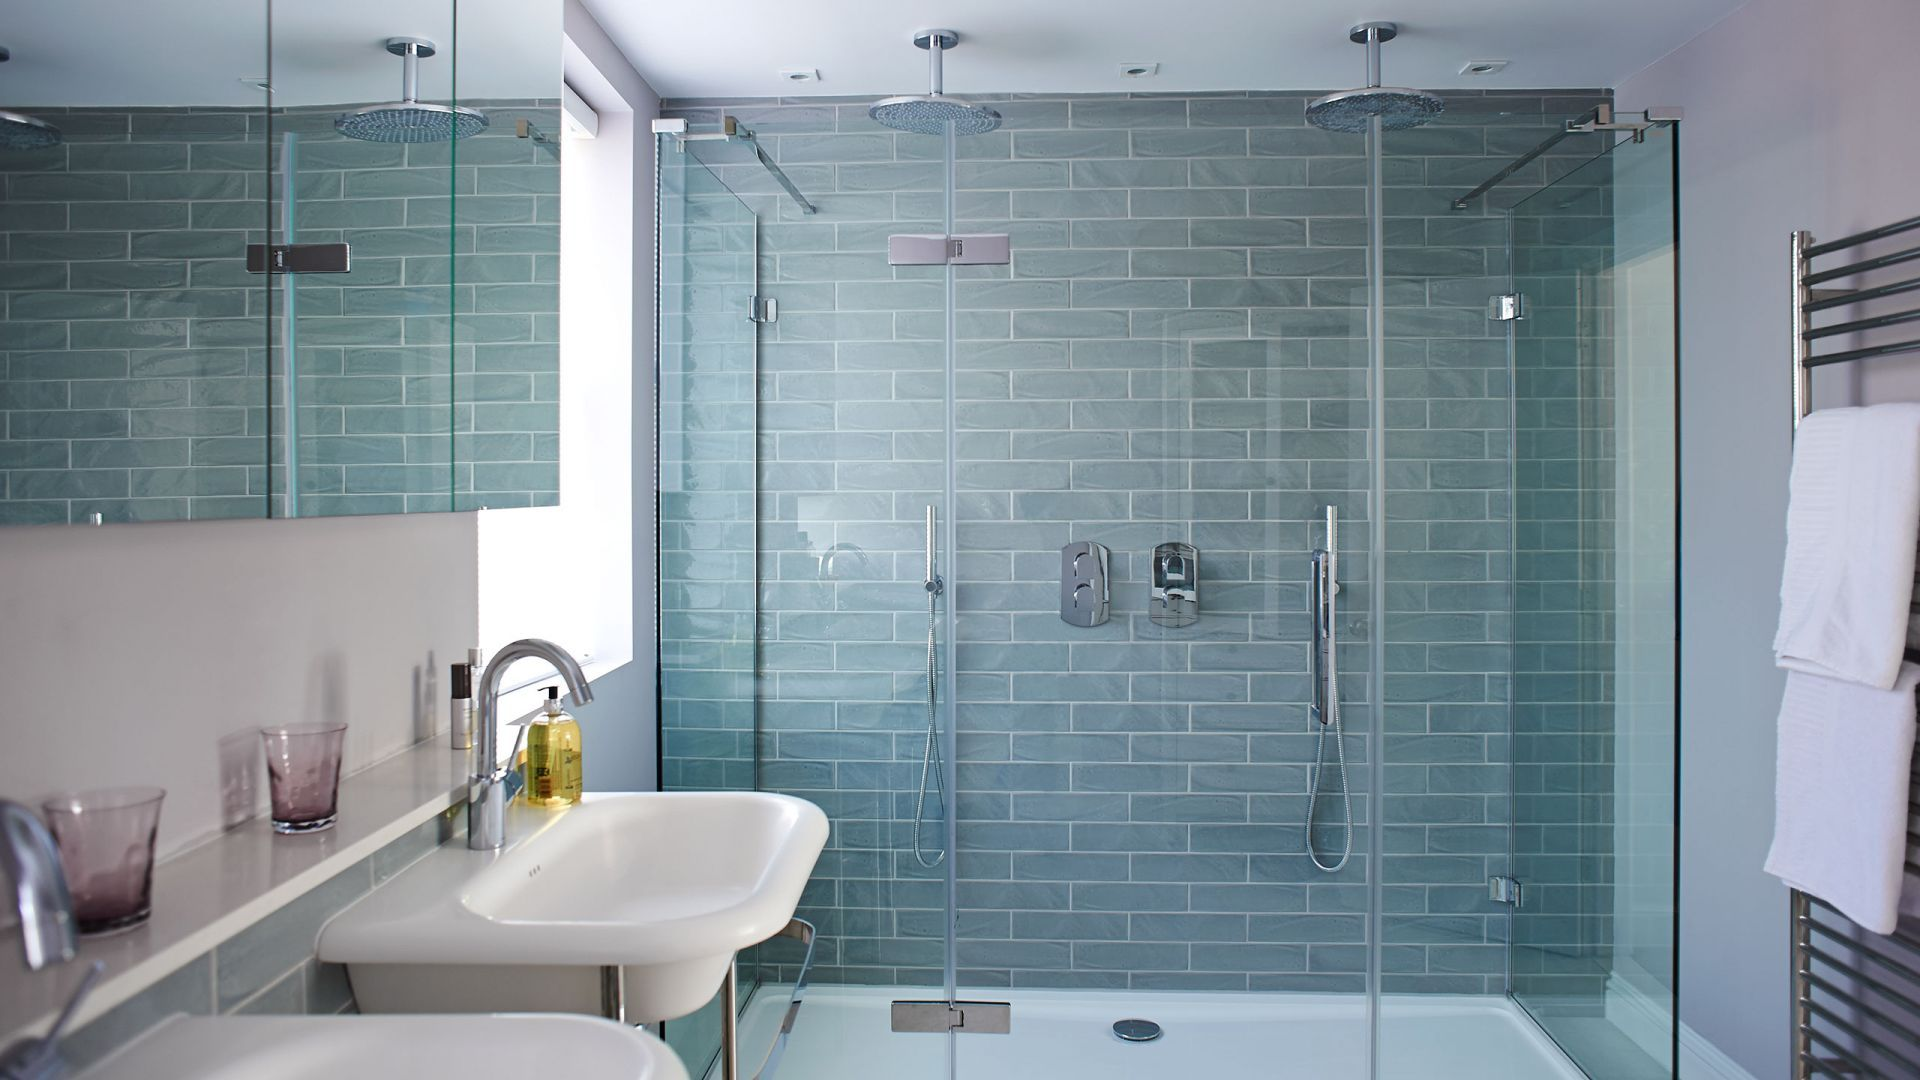 Modern Double Shower with Pale Blue Tiles - The Room Edit | Bathroom ...